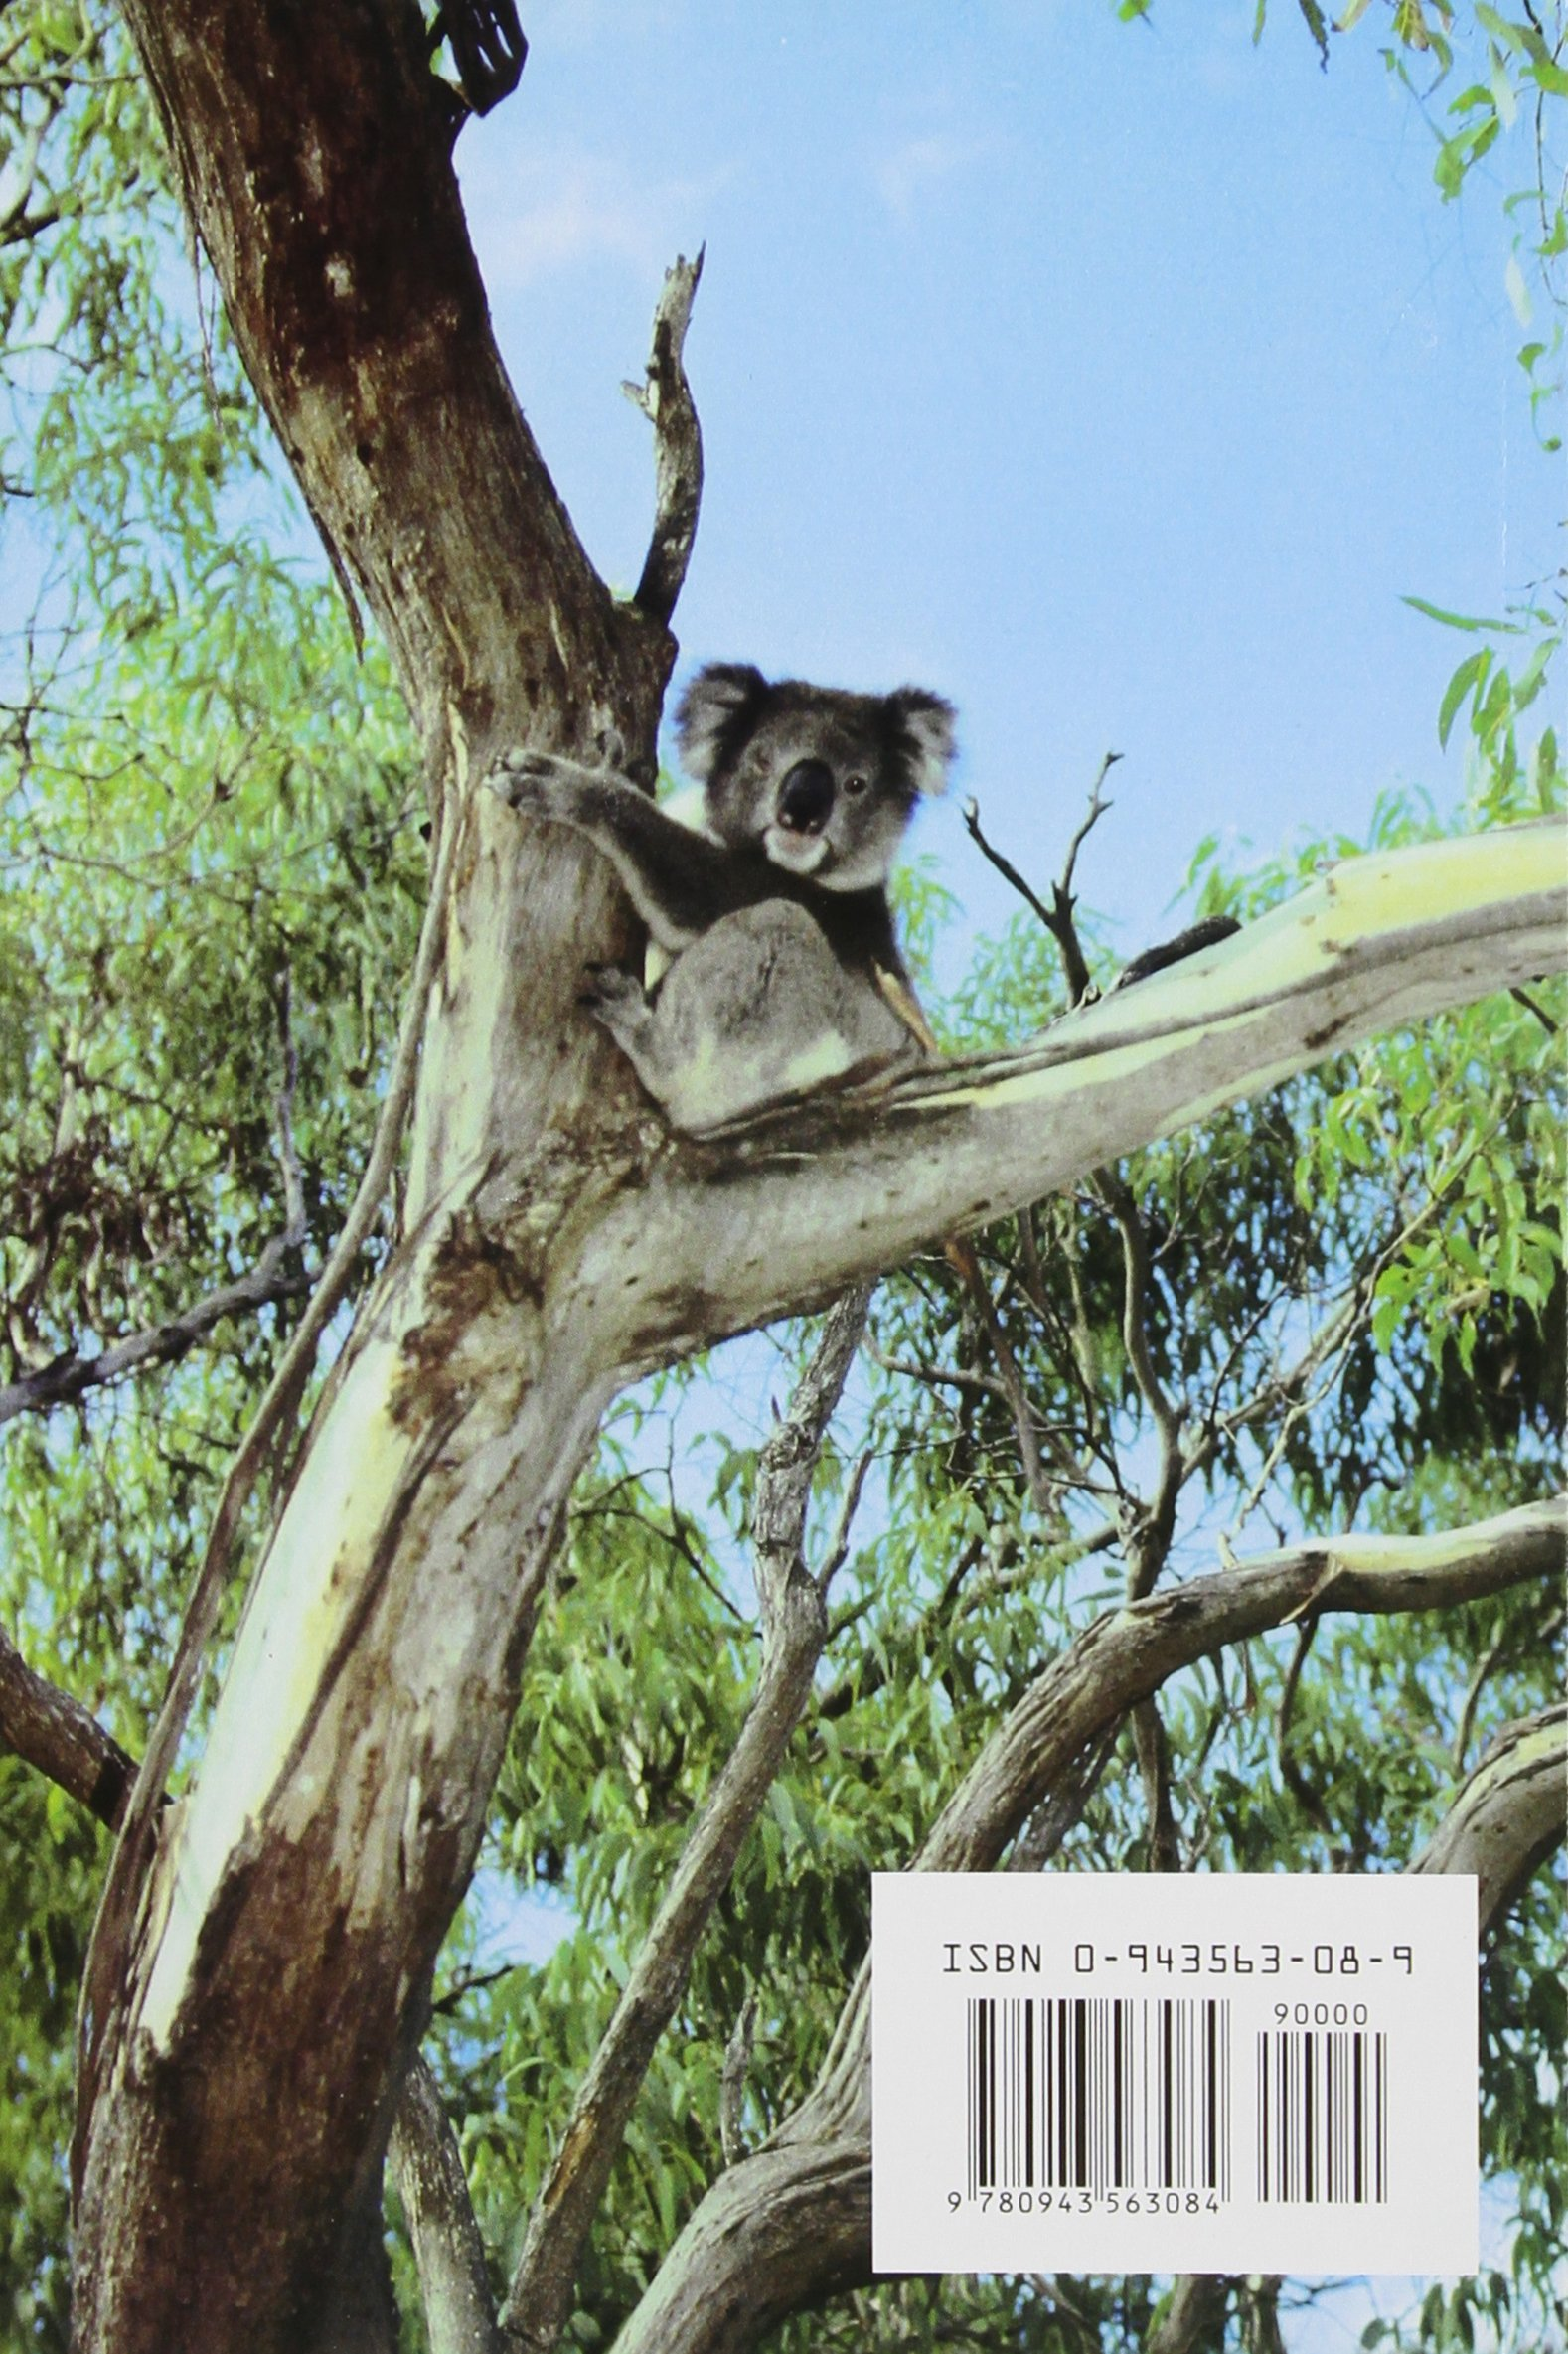 Tree Pruning: a Worldwide Photo Guide: Amazon.co.uk: Alex L. Shigo:  9780943563084: Books